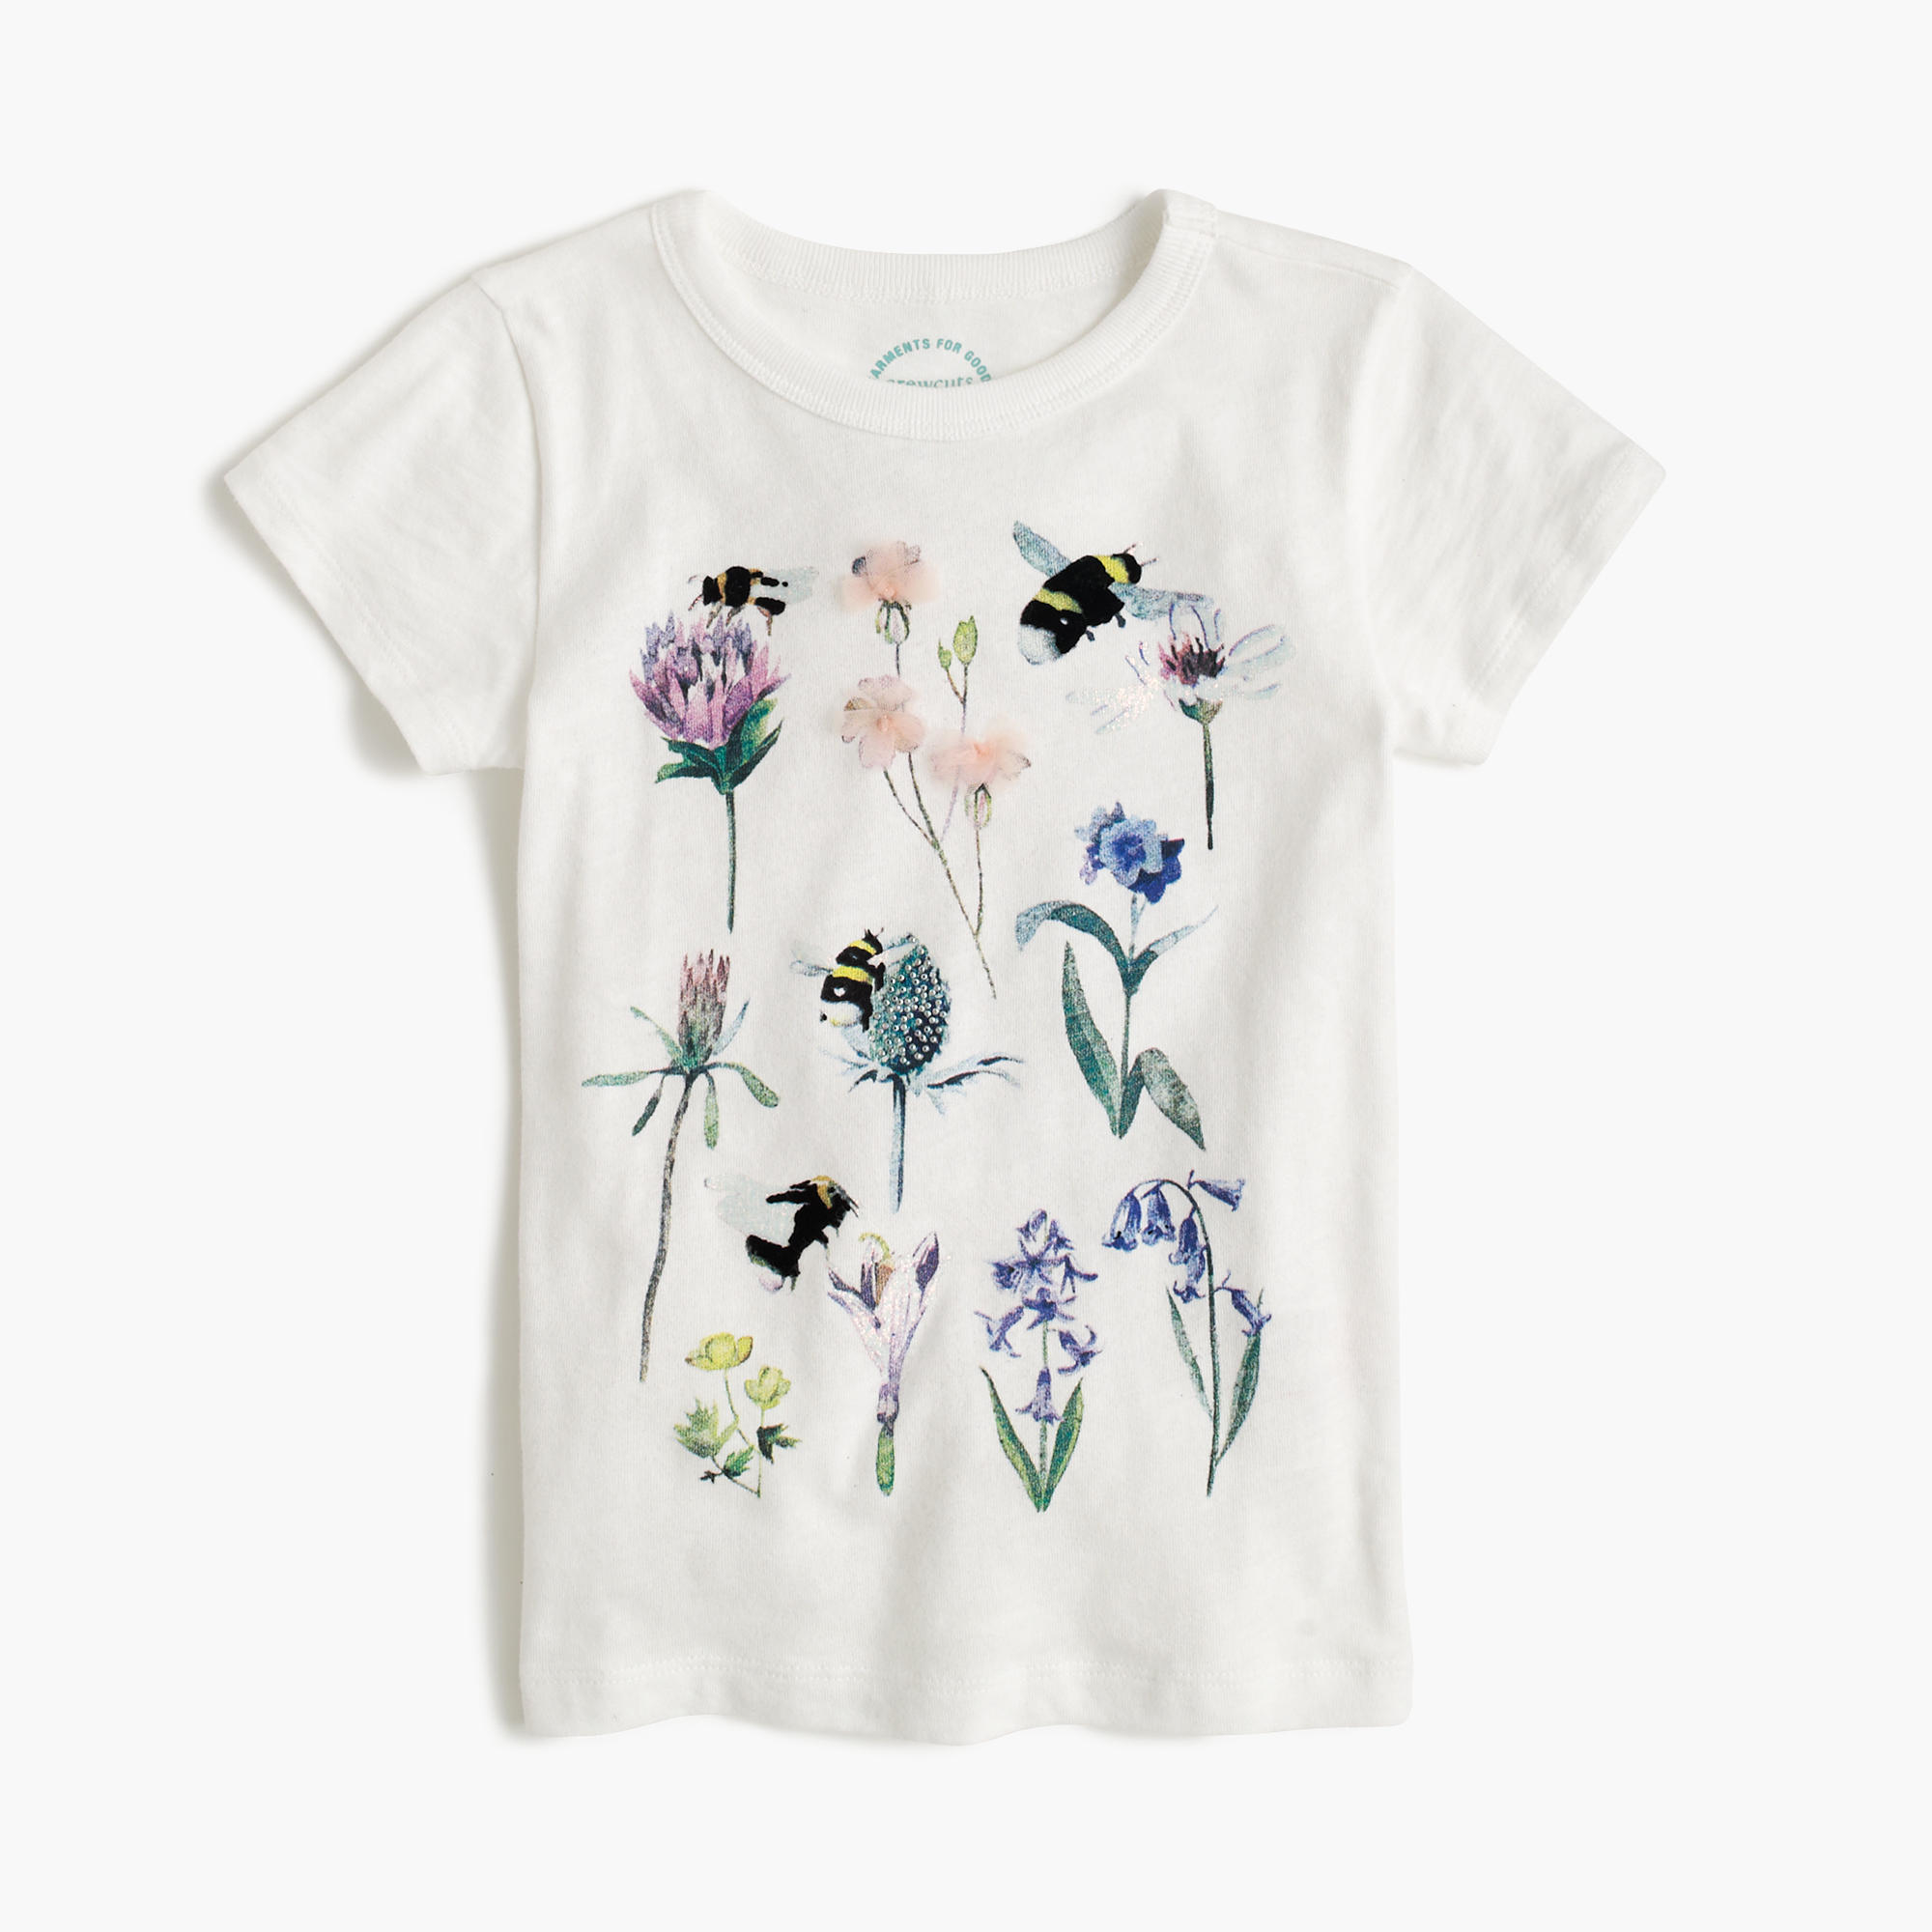 J Bees Clothing Chicago J.crew Girls' For The ...